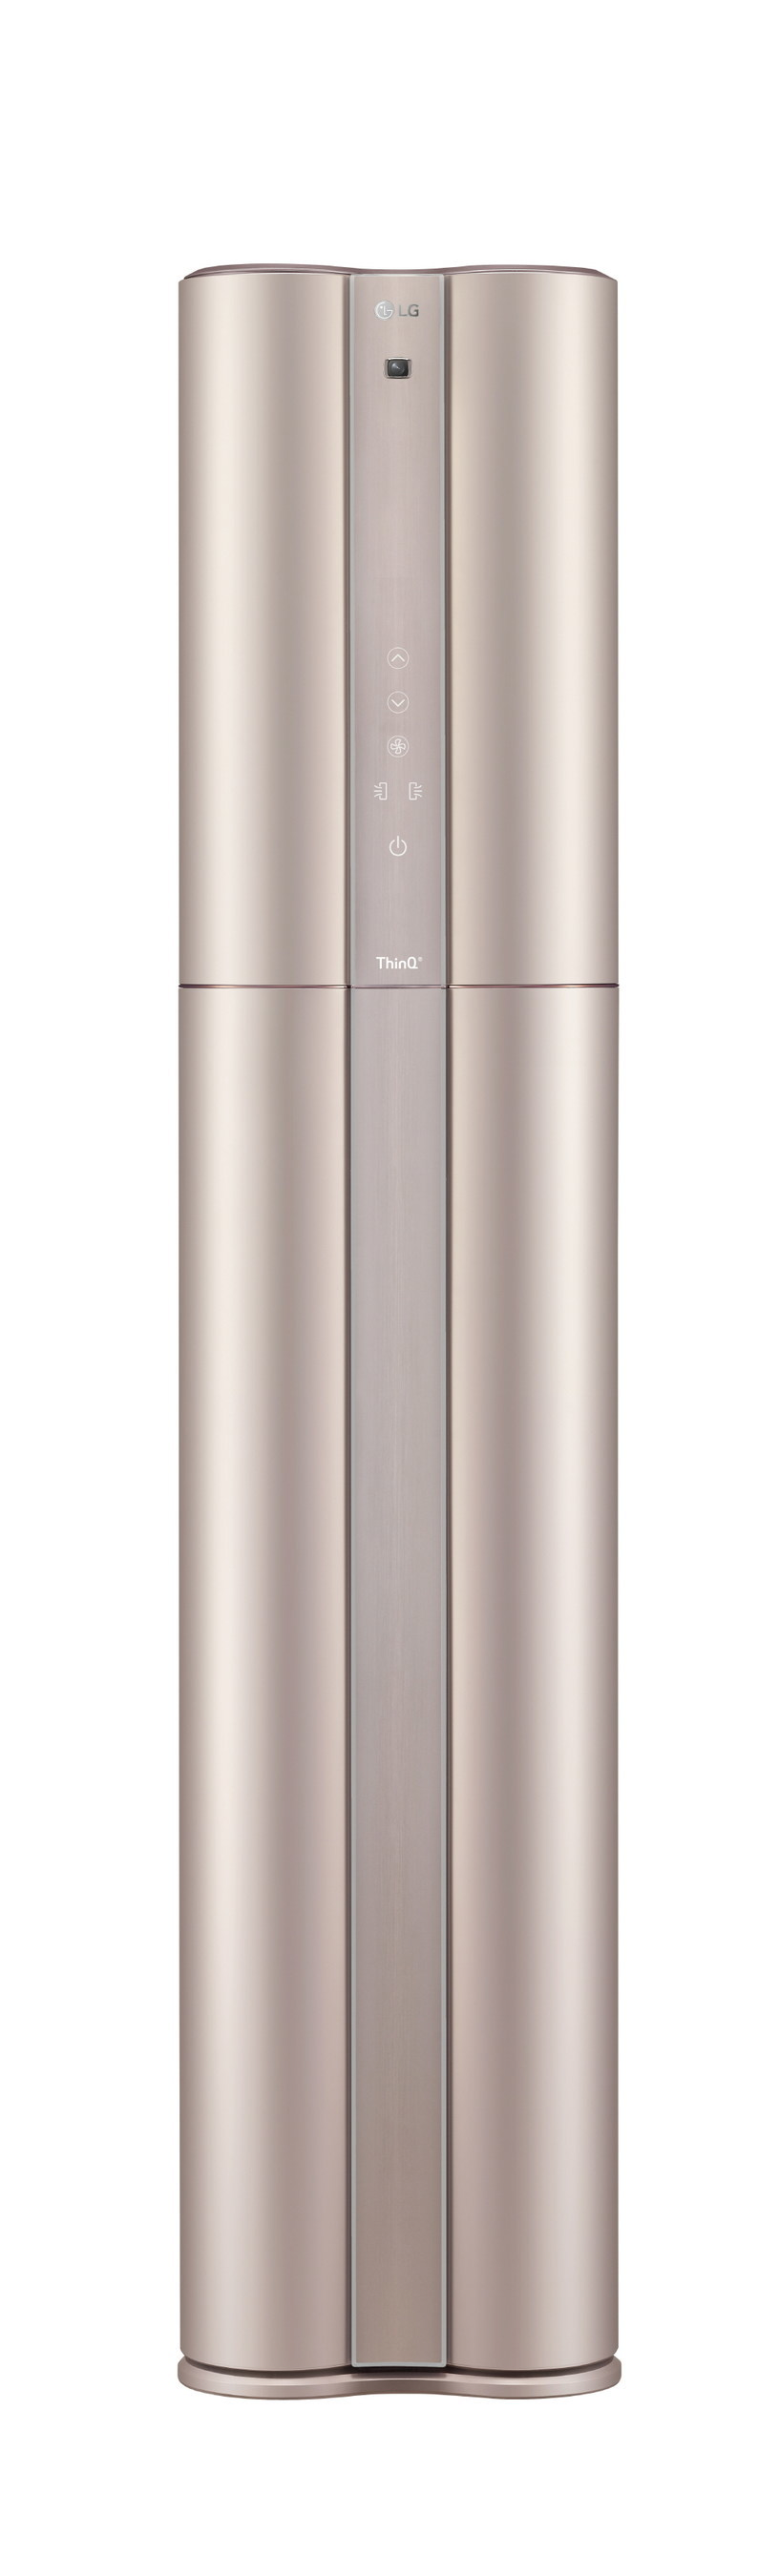 LG Debuts Smart Air Solution Products with Voice Recognition and Intelligent Dust Sensor